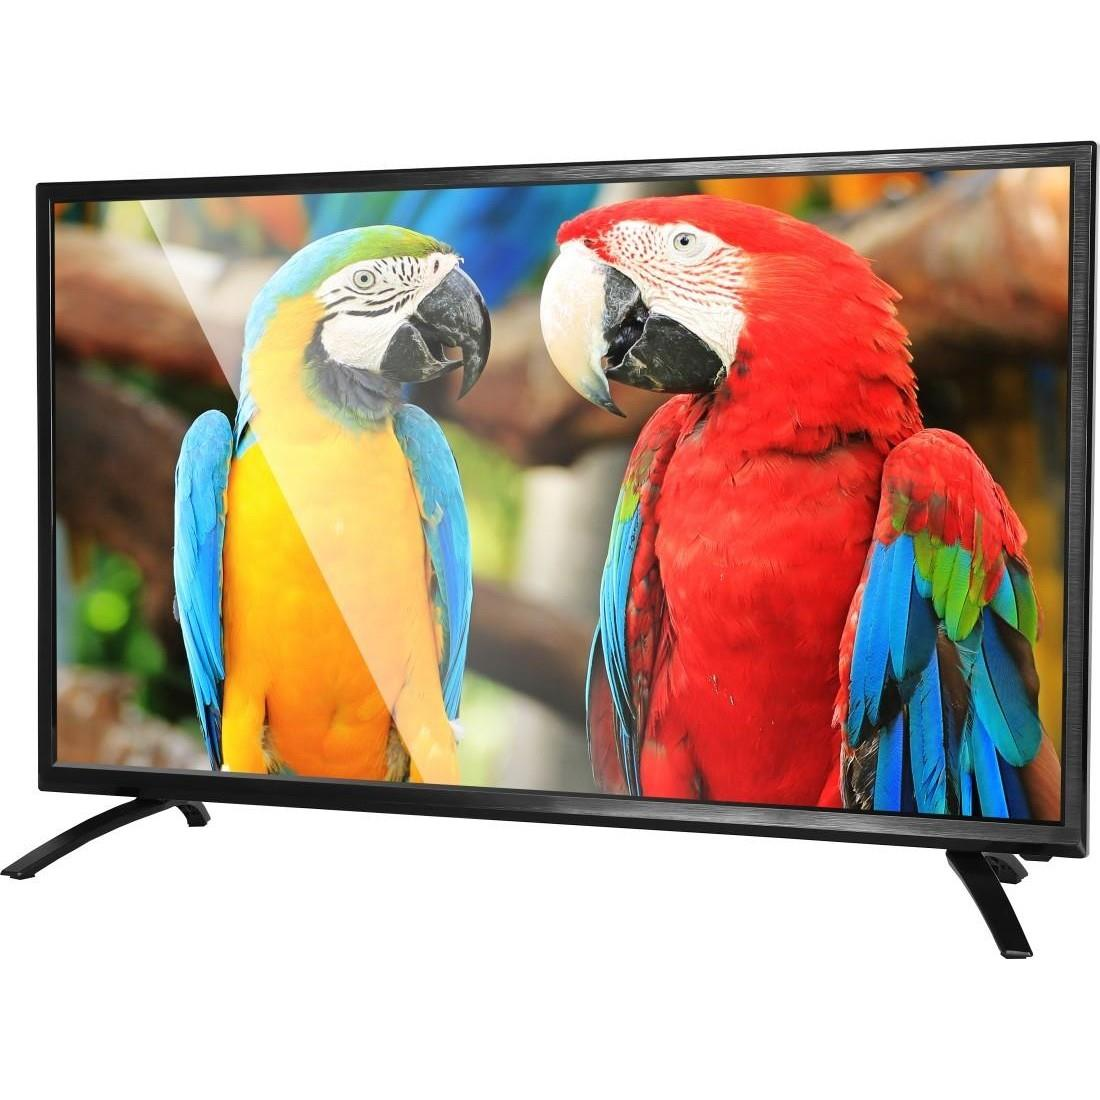 NOBLE 32CV32PBN01 80 cm (31.5) LED TV (HD Ready) Image